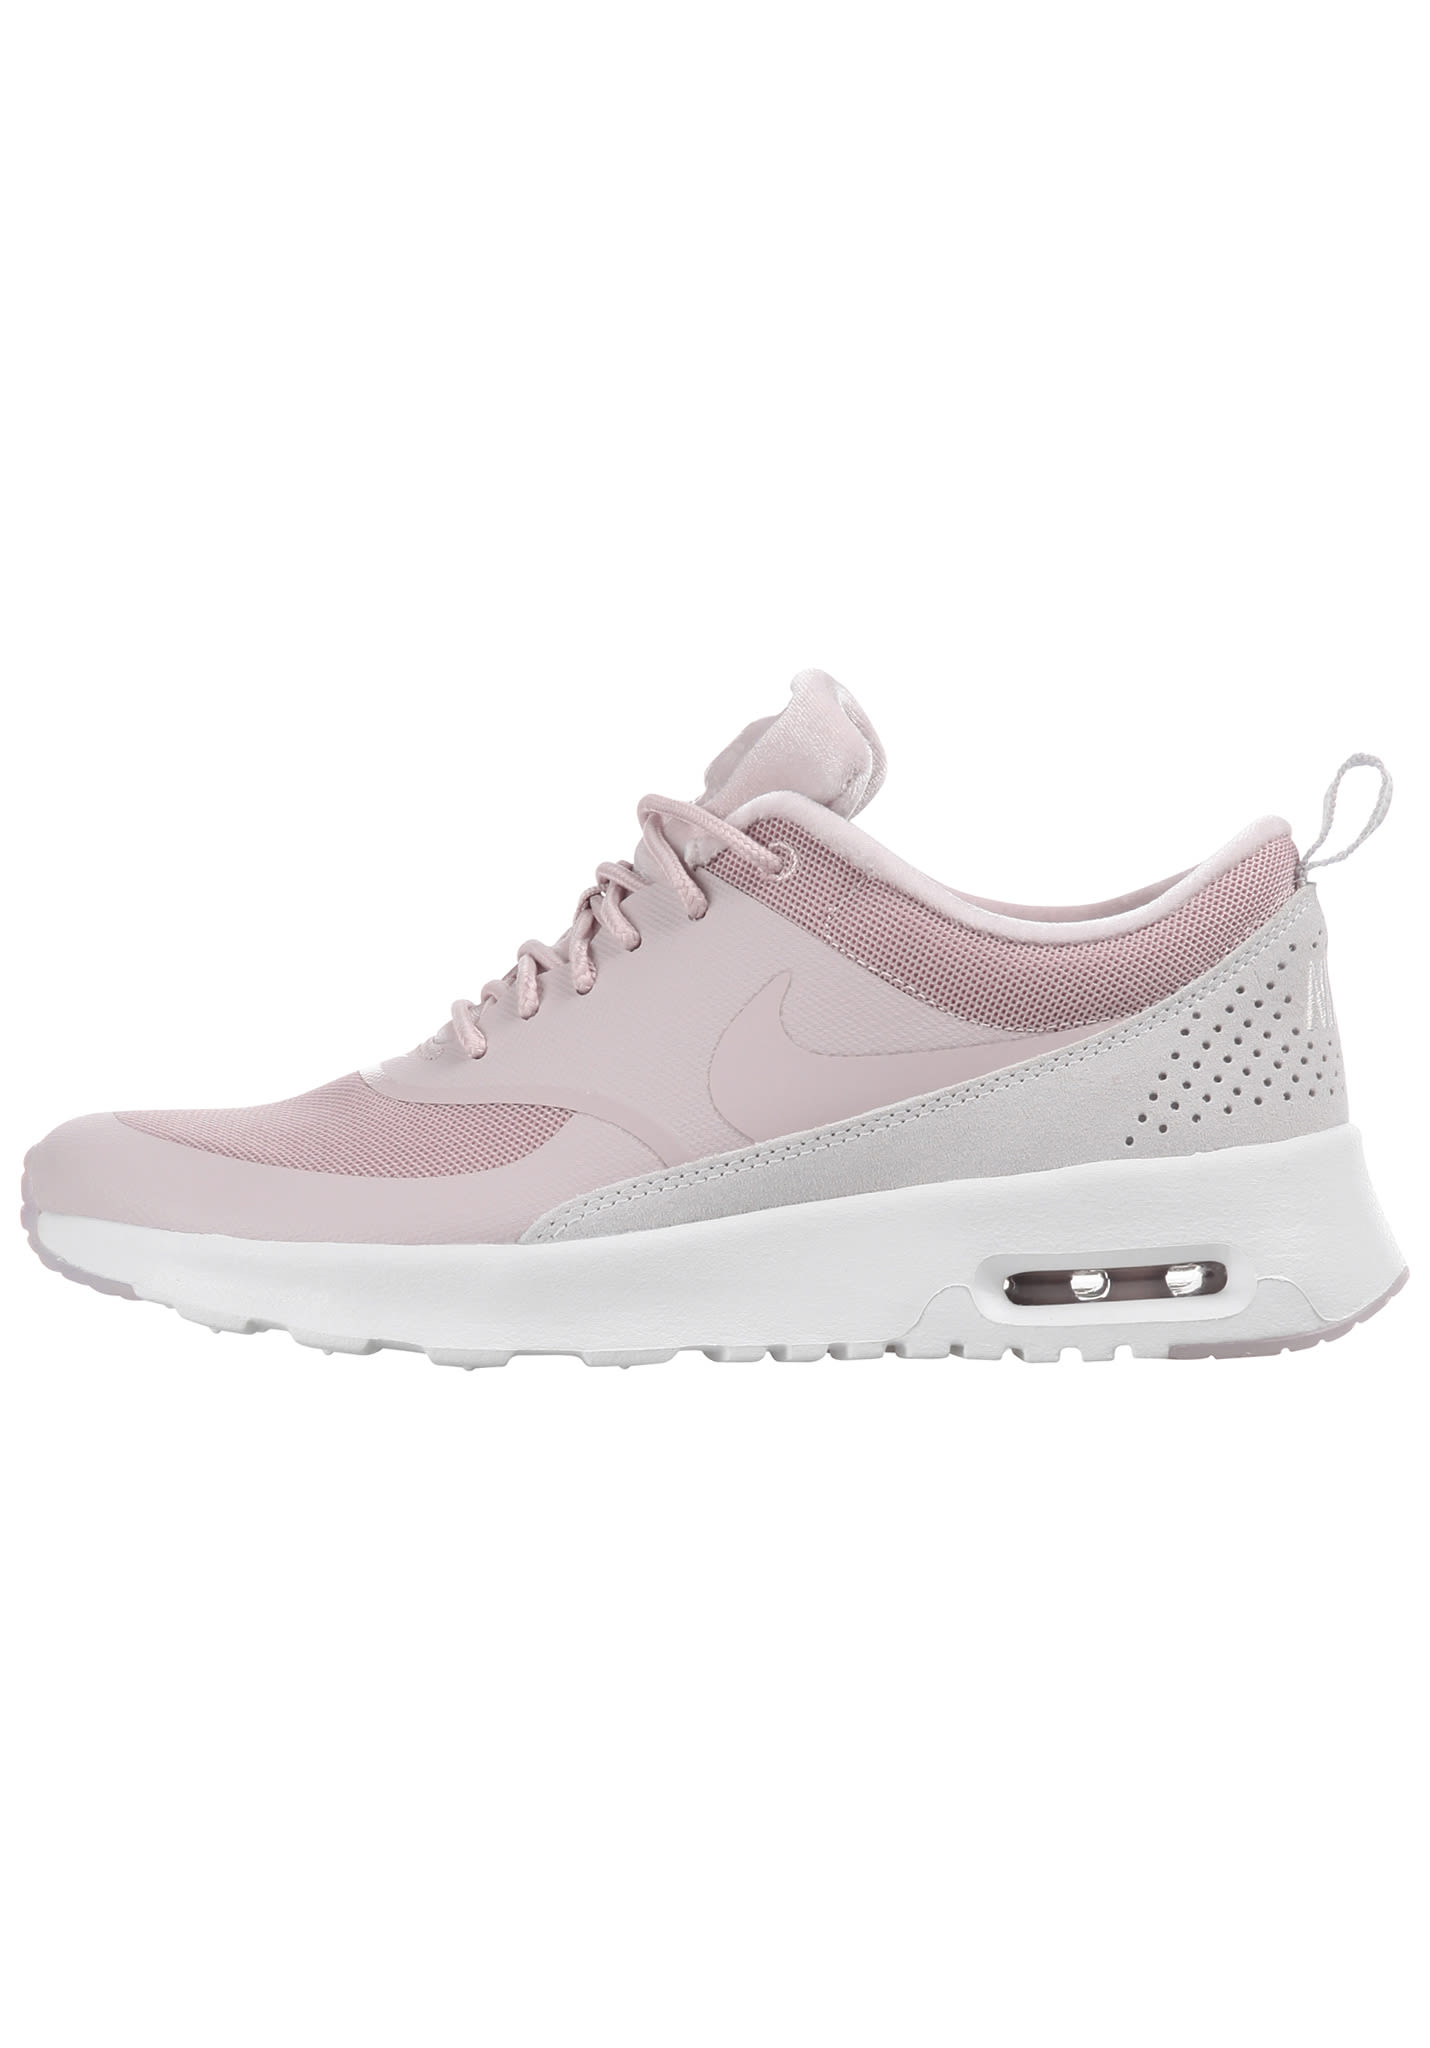 wholesale dealer 3f75d 481d6 NIKE SPORTSWEAR Air Max Thea LX - Sneakers for Women - Pink - Planet Sports